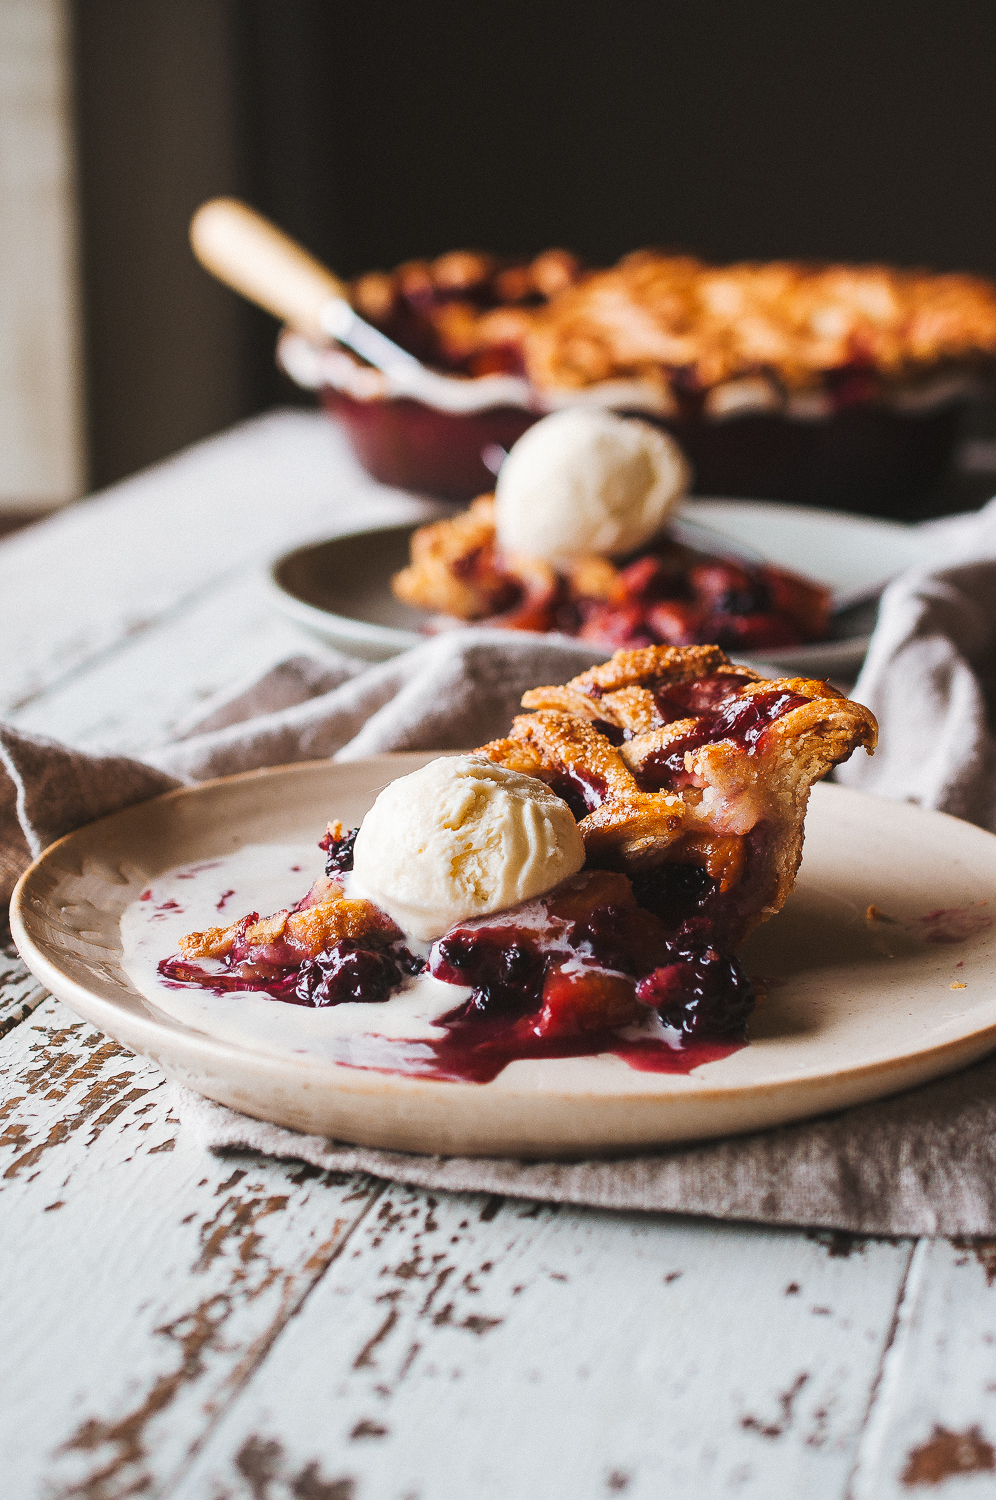 Peach blackberry pie 11.jpg